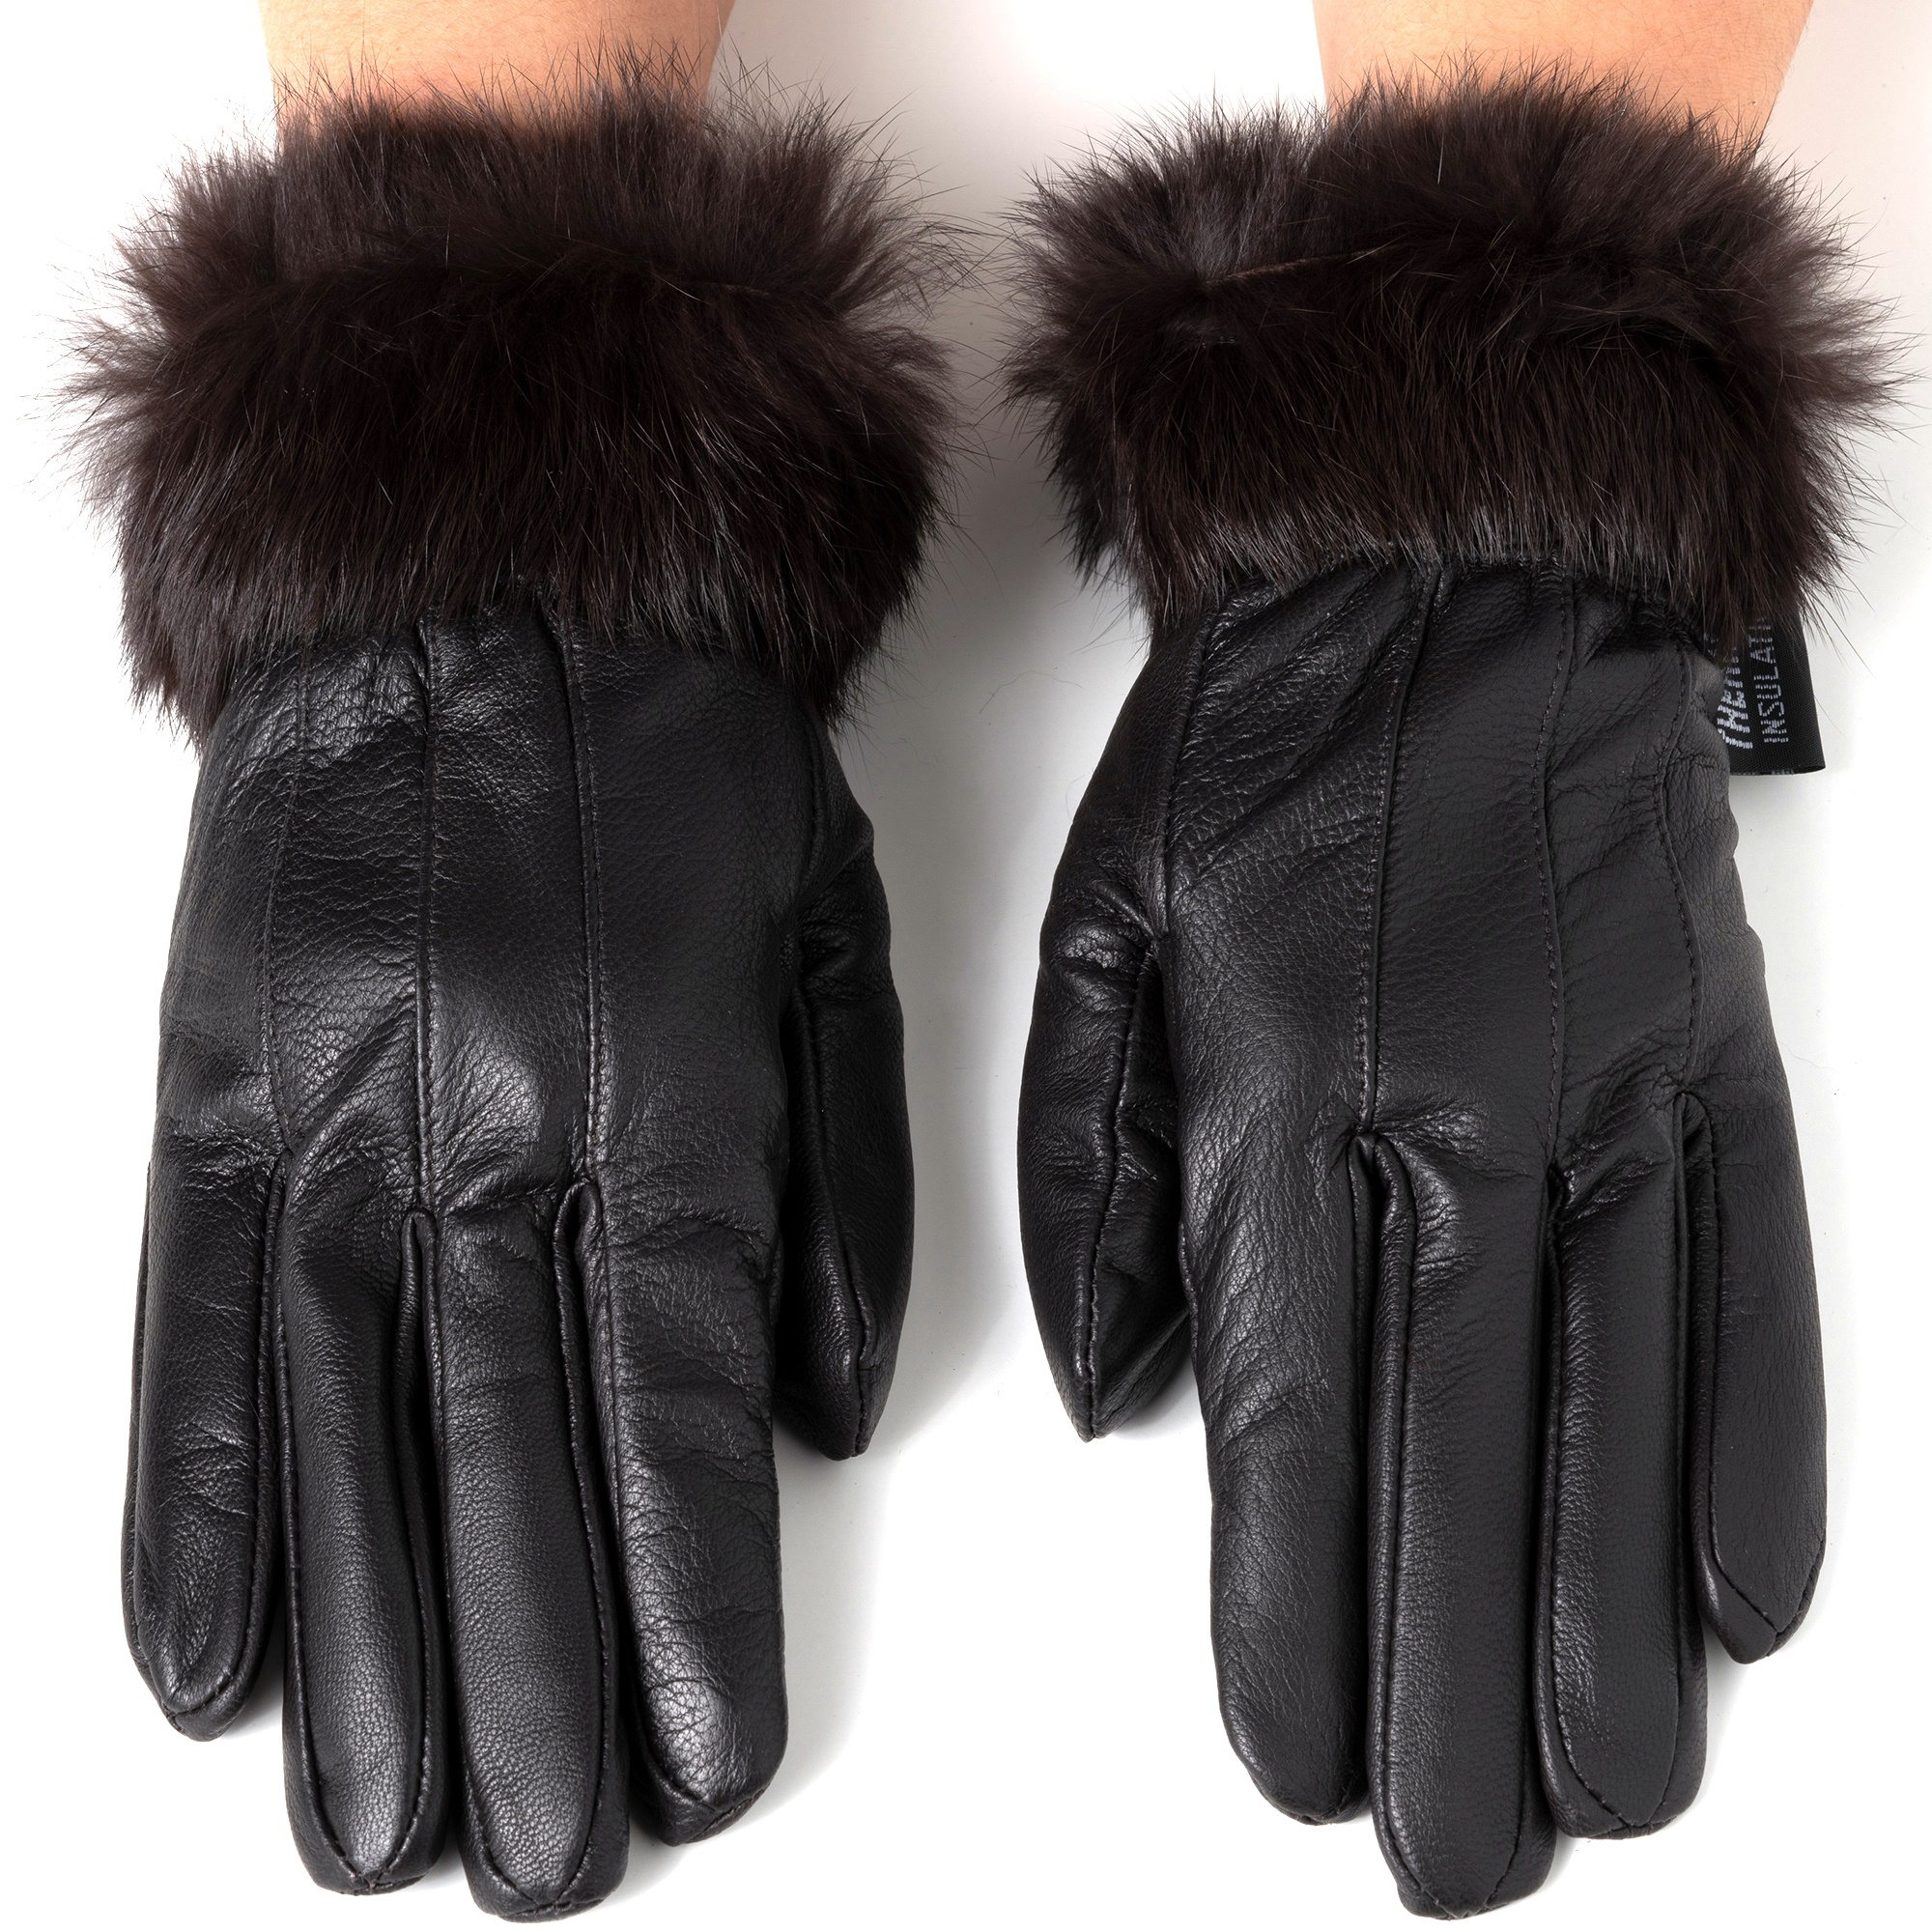 Alpine-Swiss-Womens-Dressy-Gloves-Genuine-Leather-Thermal-Lining-Fur-Trim-Cuff thumbnail 22